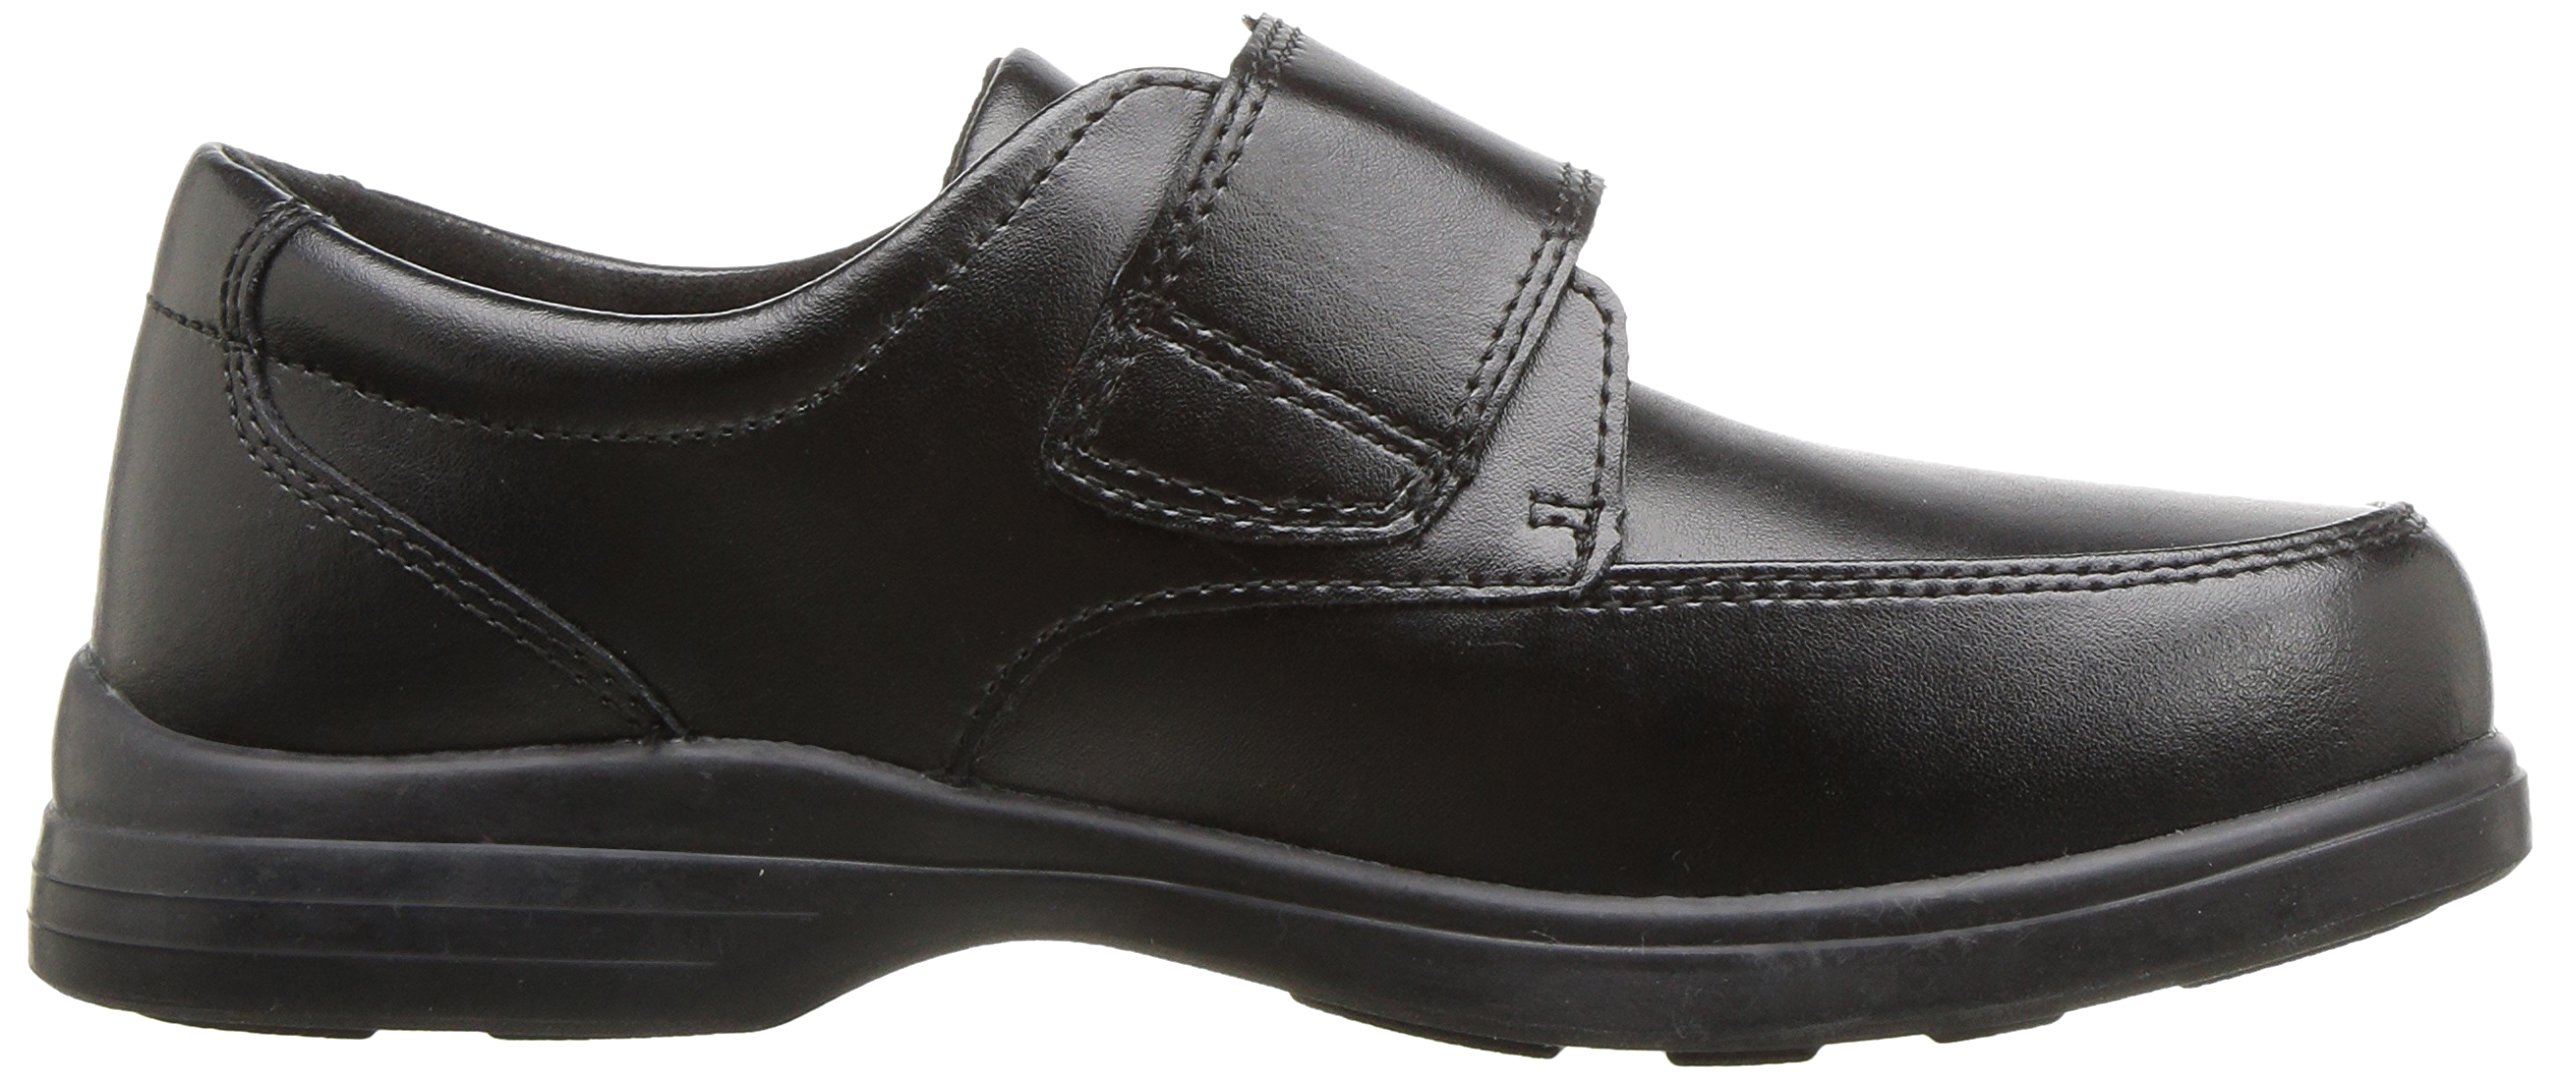 Hush Puppies Gavin Uniform Dress Shoe (Toddler/Little Kid/Big Kid), Black, 3 M US Little Kid by Hush Puppies (Image #7)